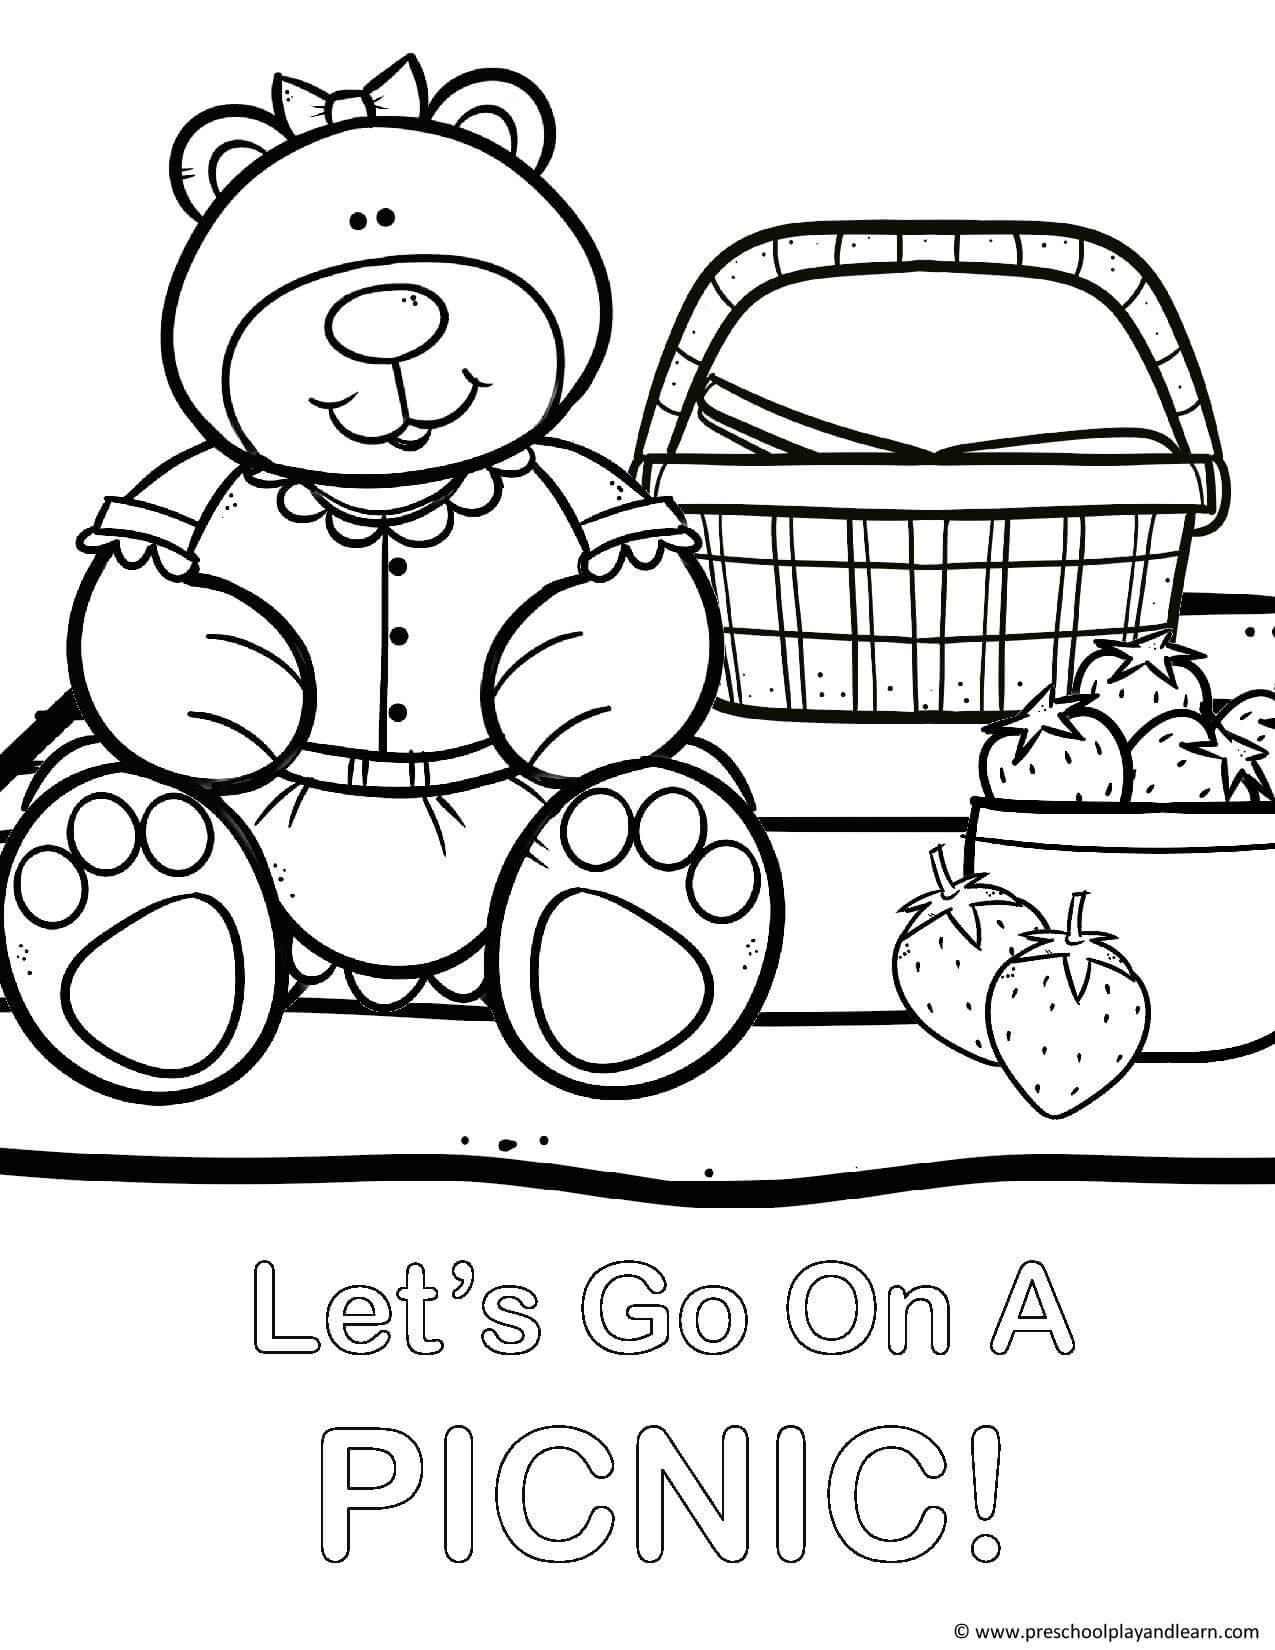 Teddy bear colouring images